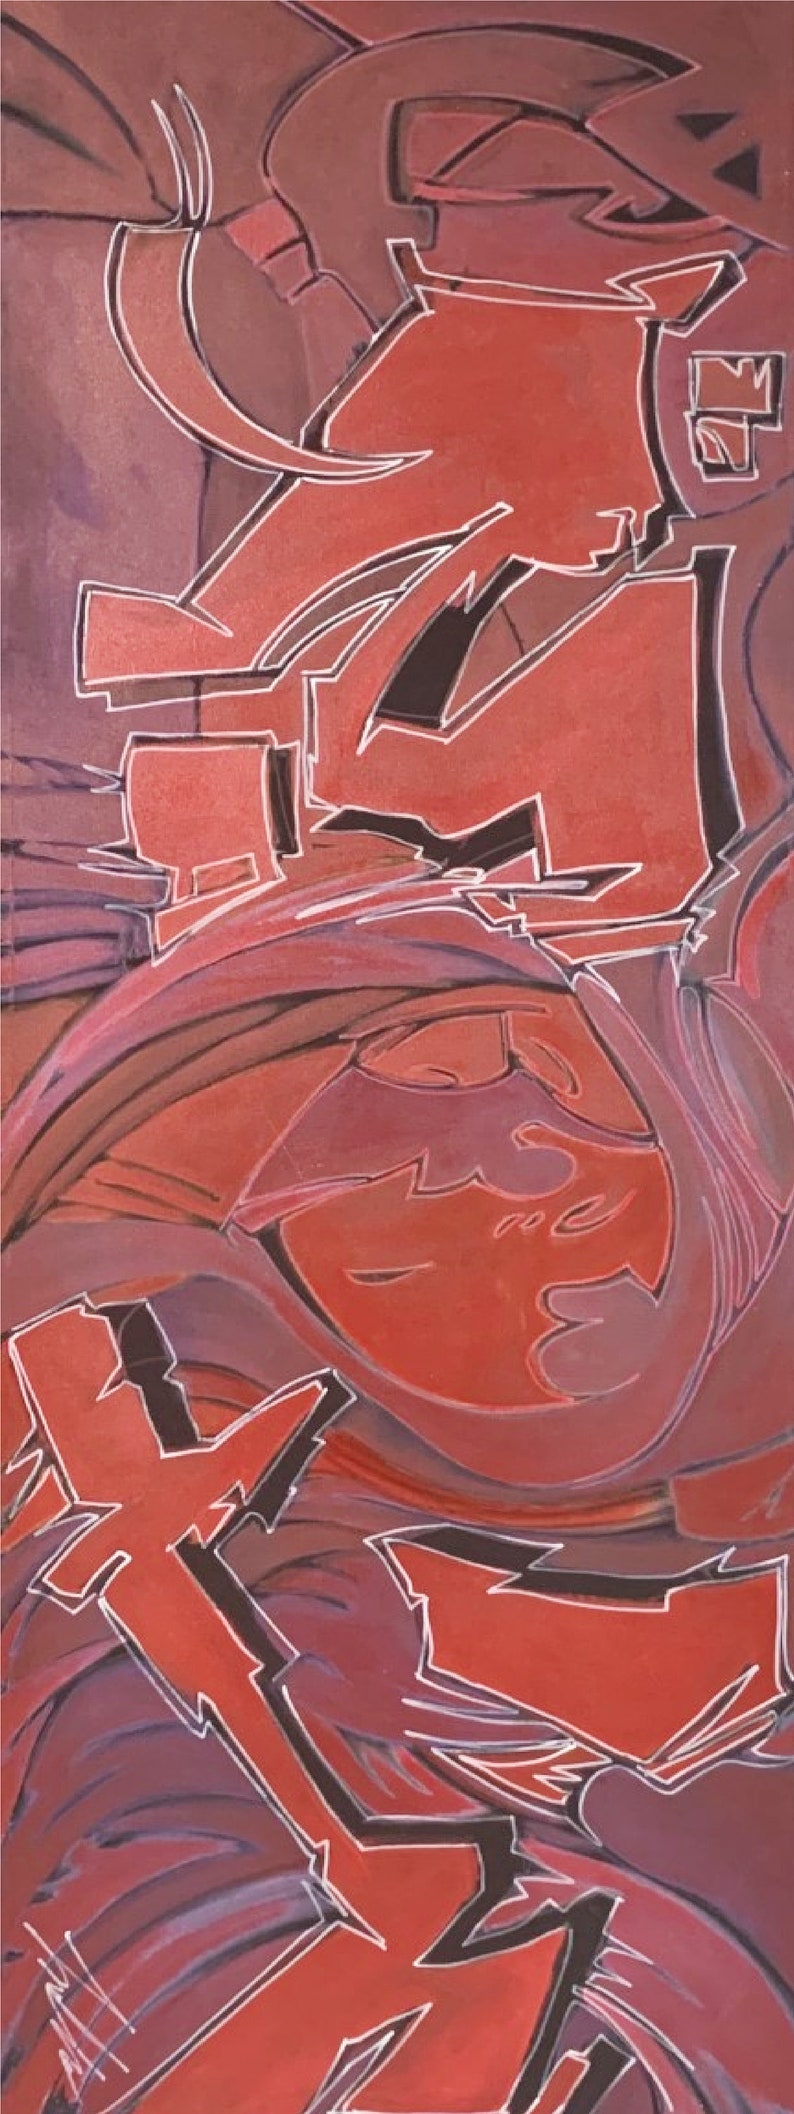 Thieves is an original abstract painting by Alias Kane modern contemporary art urban street